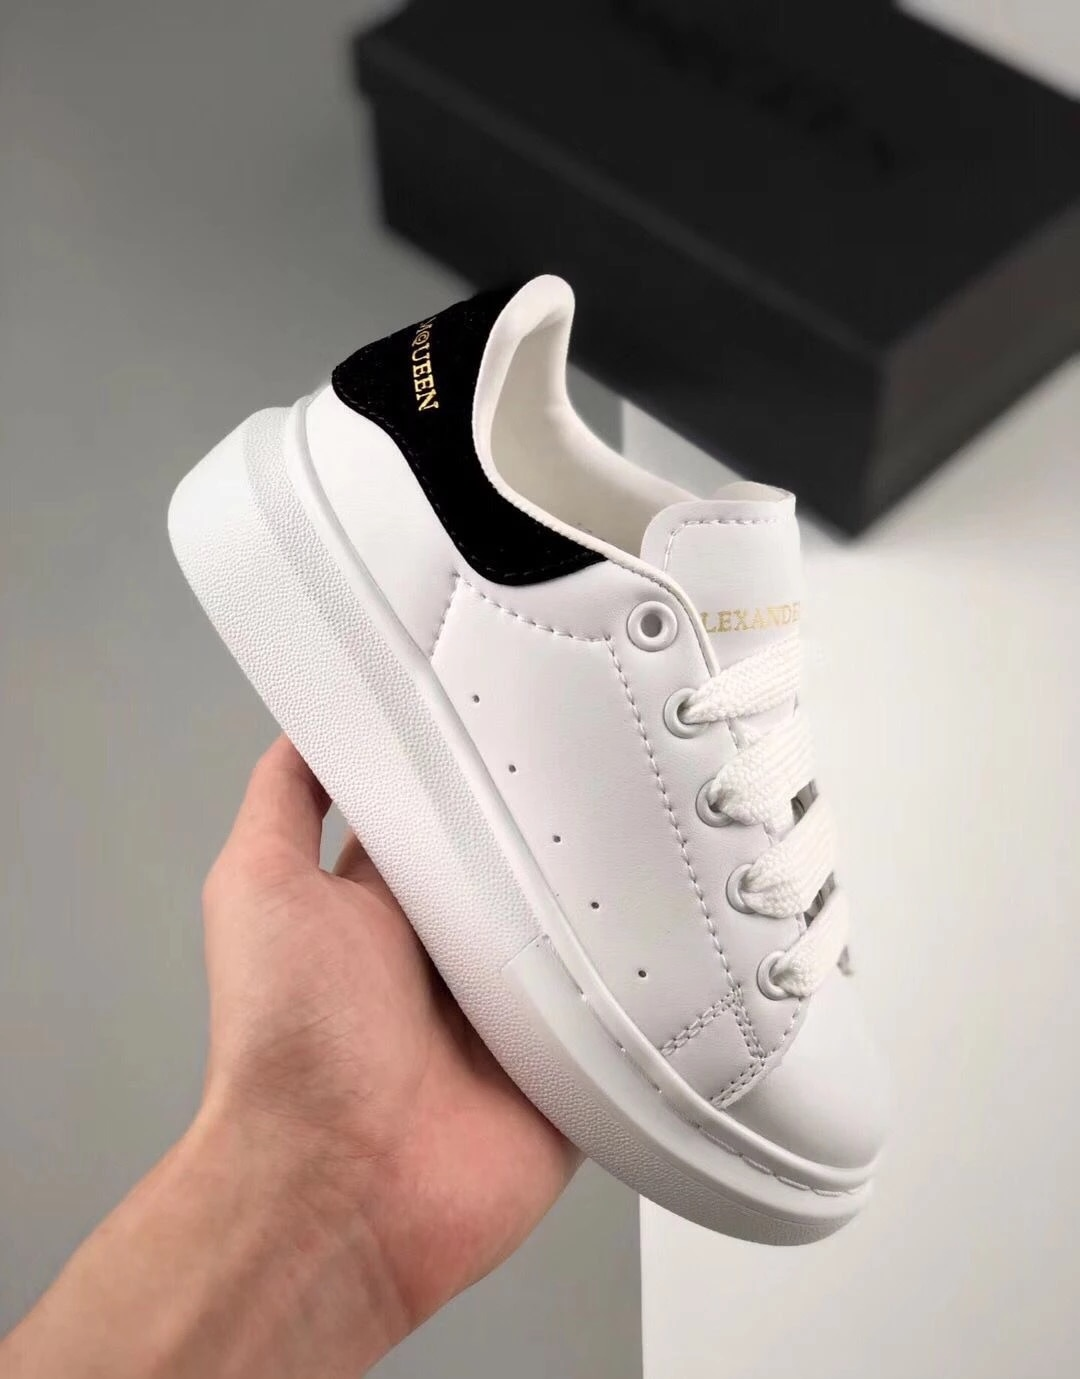 2021 Girls Boys Lace-Up Fashion Sneakers Toddler/Little/Big Kid Flatform Fashion Trainers Children G